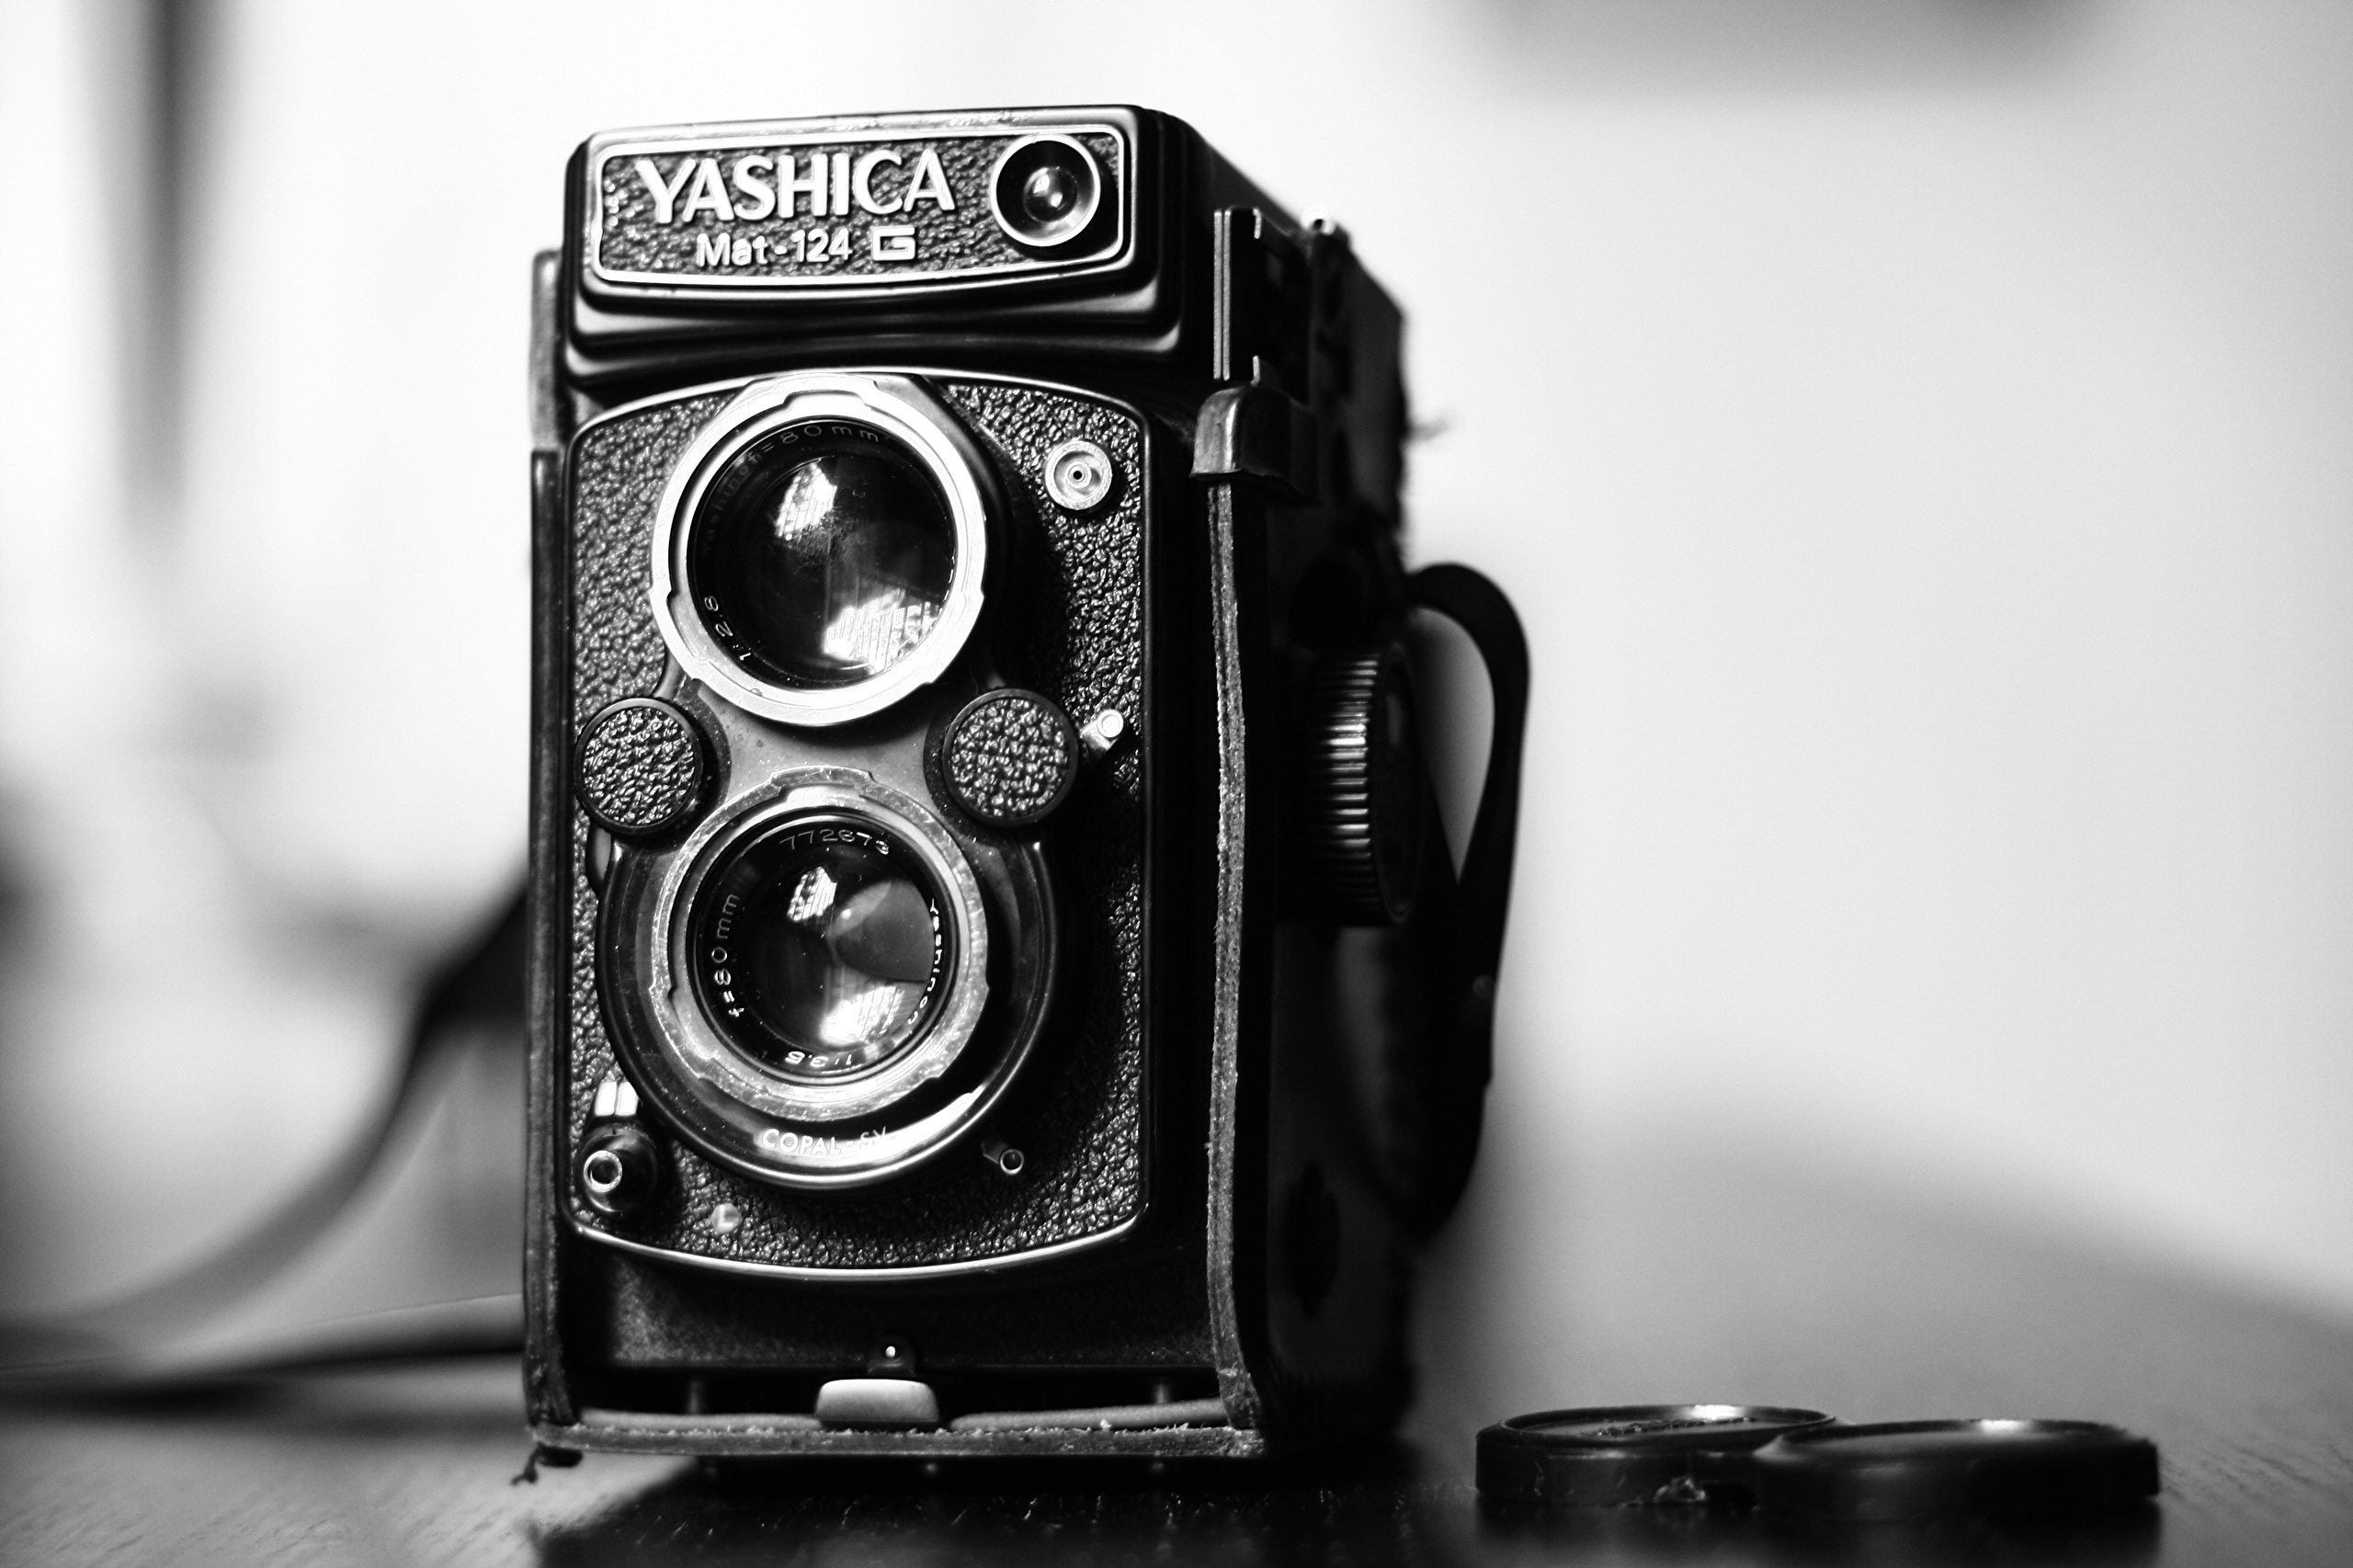 Photo Camera Yashica MAT 124G antique Closeup 2560x1706 2560x1706